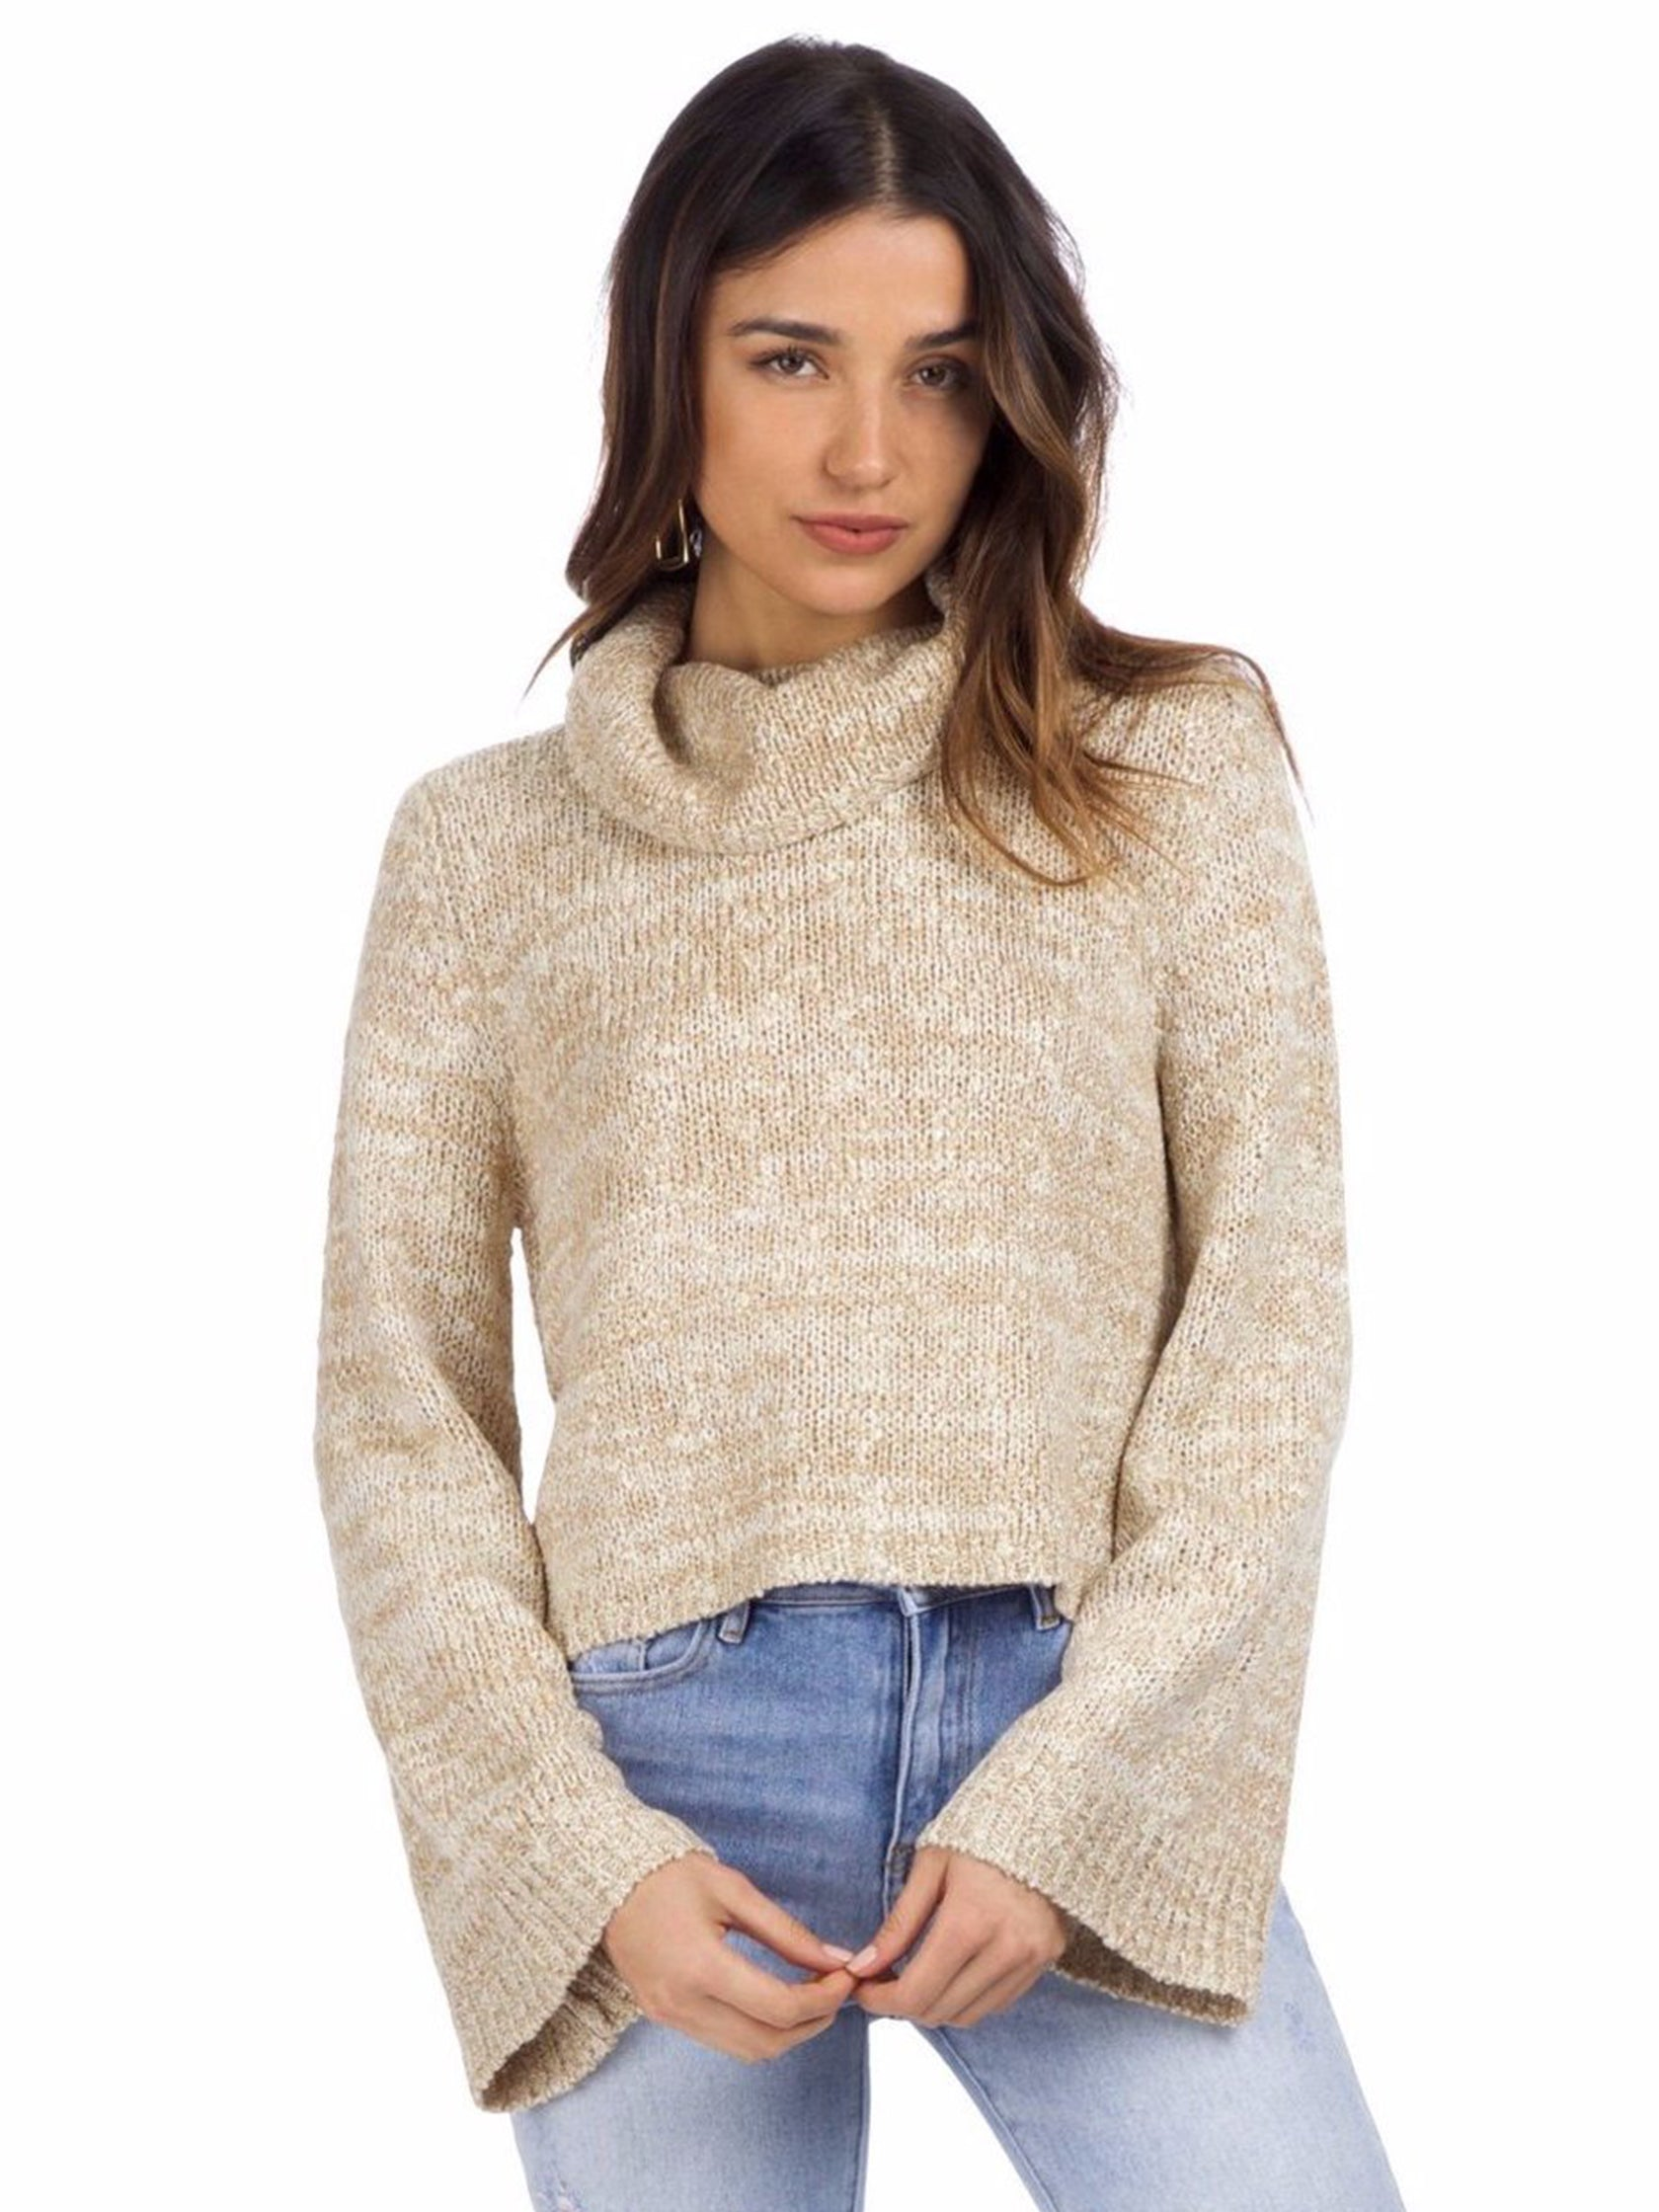 Woman wearing a sweater rental from MINKPINK called Duchess Full Sleeve Sweater